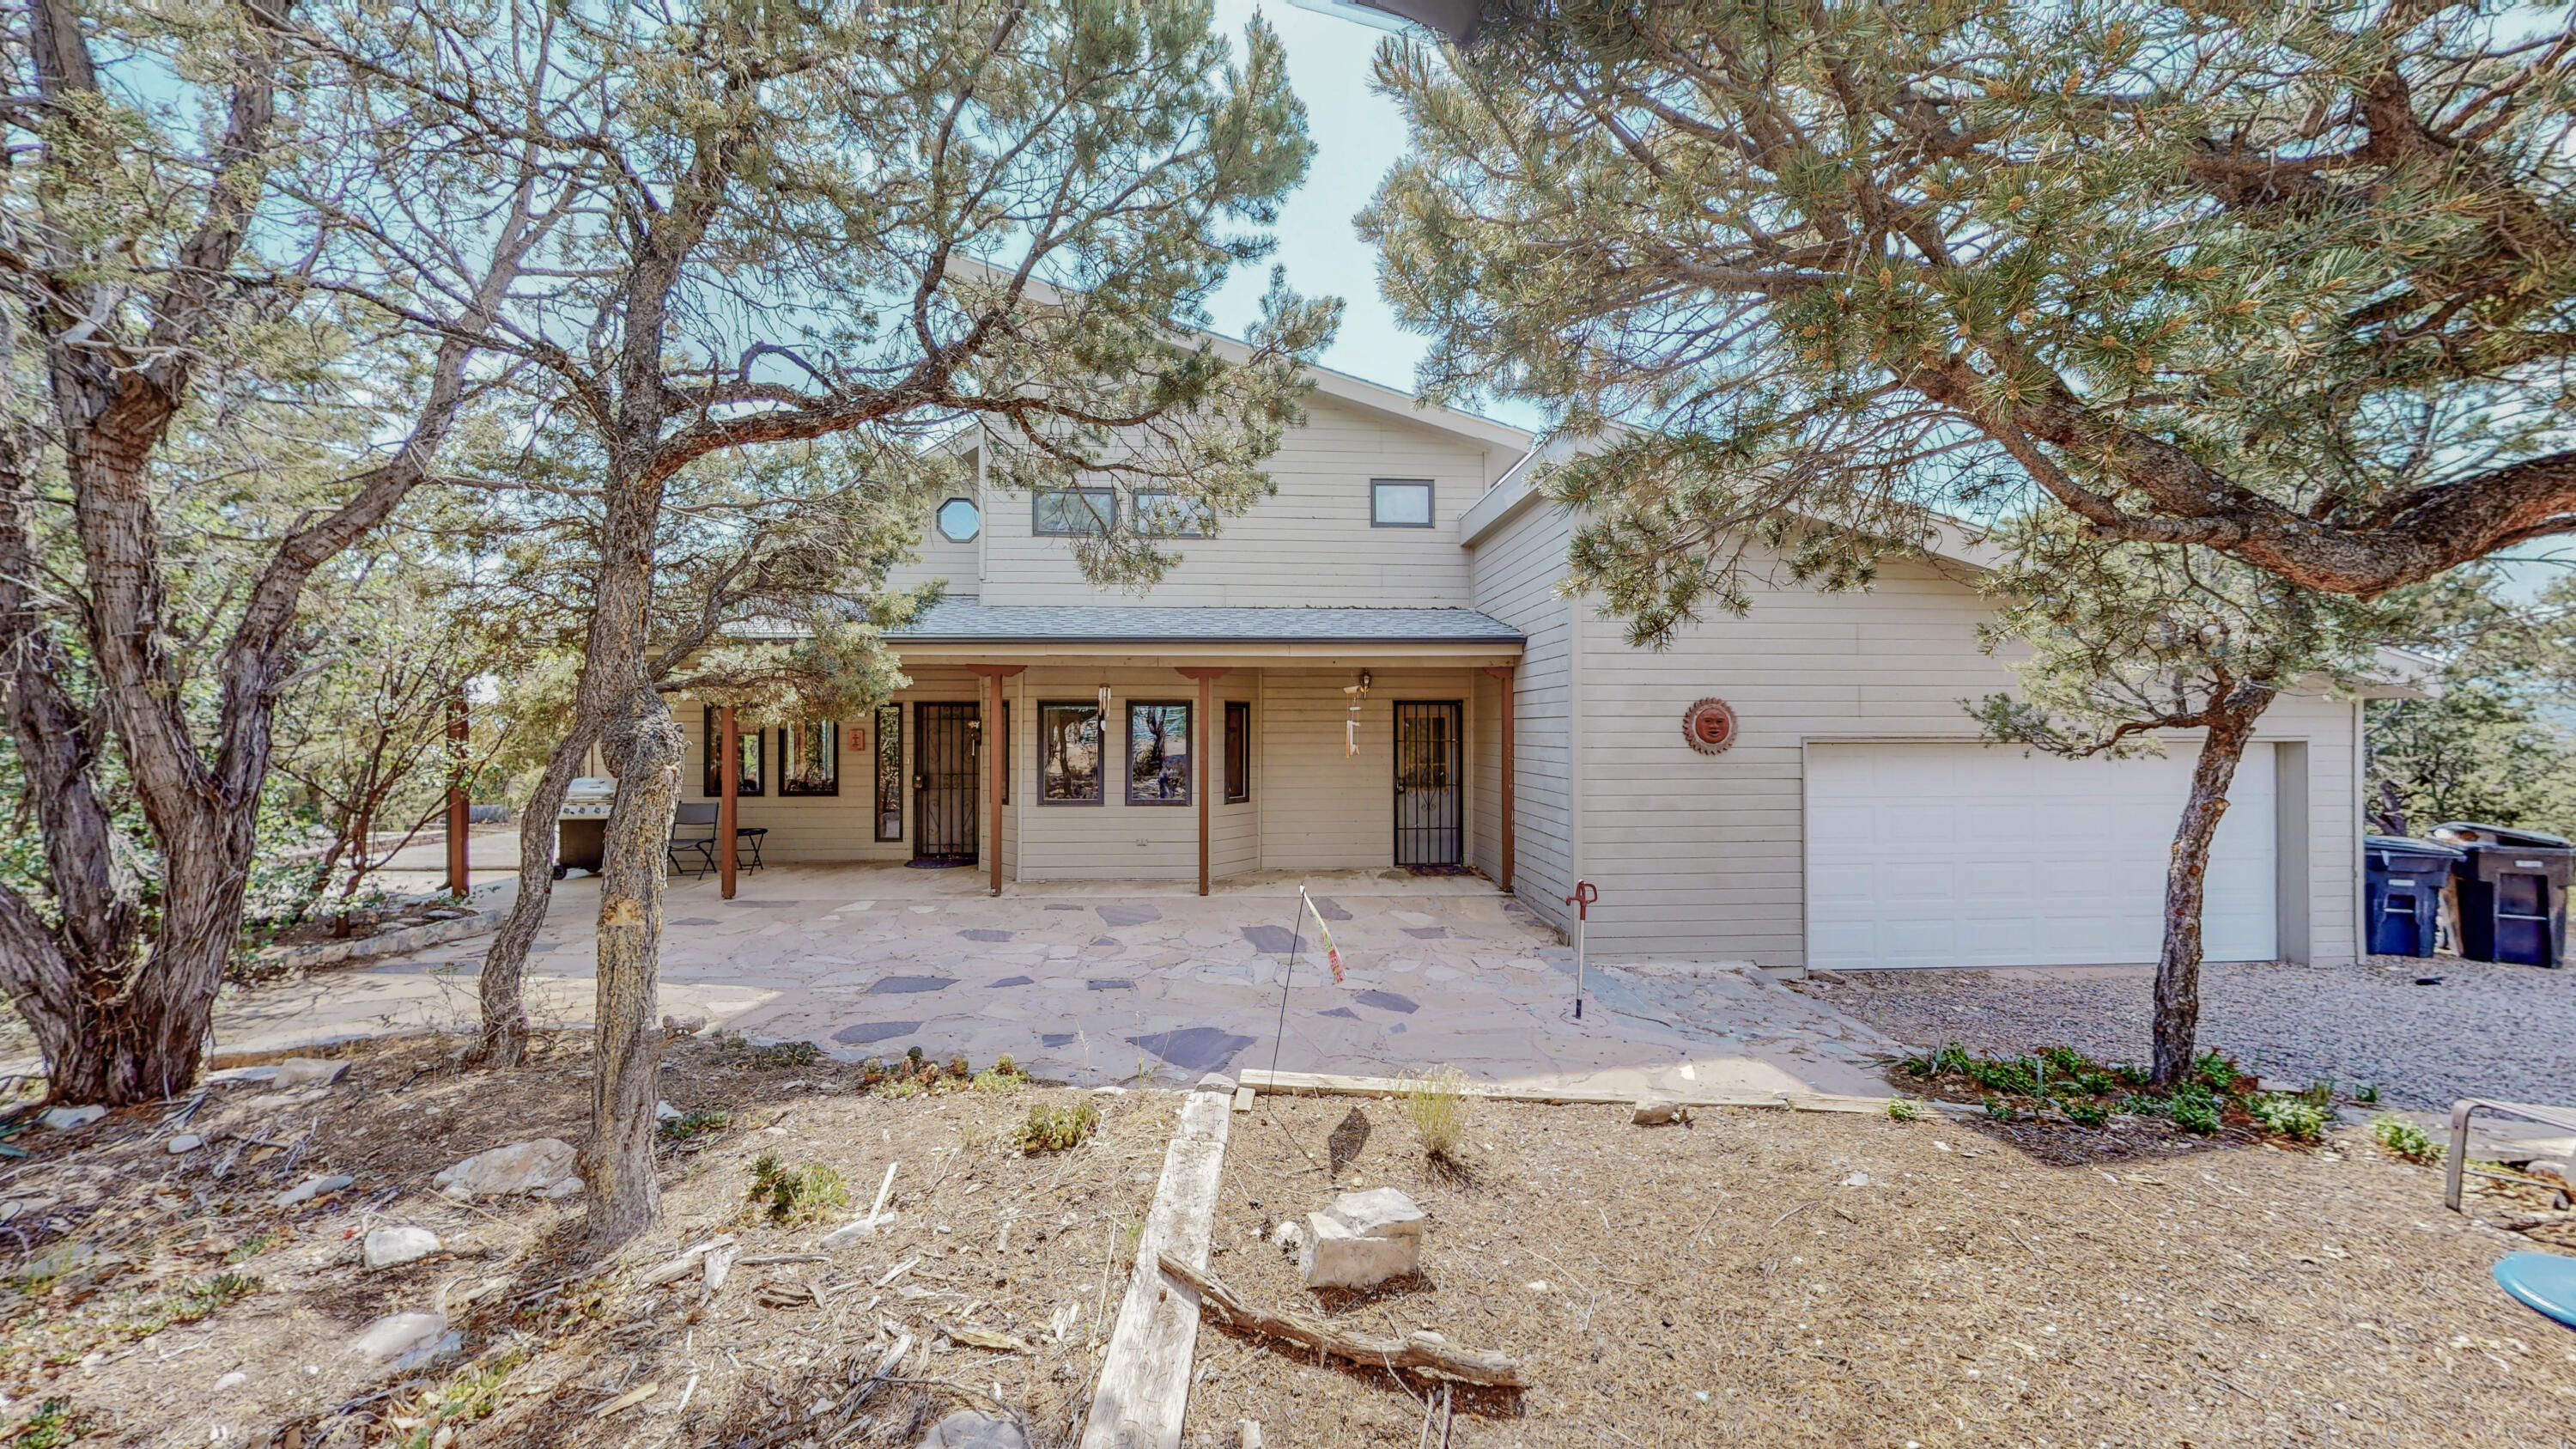 Welcome home to this beauty in the woods!  Gleaming brick floors throughout the lower level invite you to cozy up & enjoy the views from all the wood clad windows! Let the large wood stove keep you toasty in the winter. This 3 bedroom 2 1/2 bath with oversized garage & extra hobby room or office is just what you need to be close enough to Albuquerque but far enough away to feel like it's a sanctuary!  Situated on almost an acre, you have privacy yet still have the feel of a neighborhood.  Enjoy the beautiful views & quite!  Luxury living at affordable pricing!  Come put your special touch to this home in the woods!